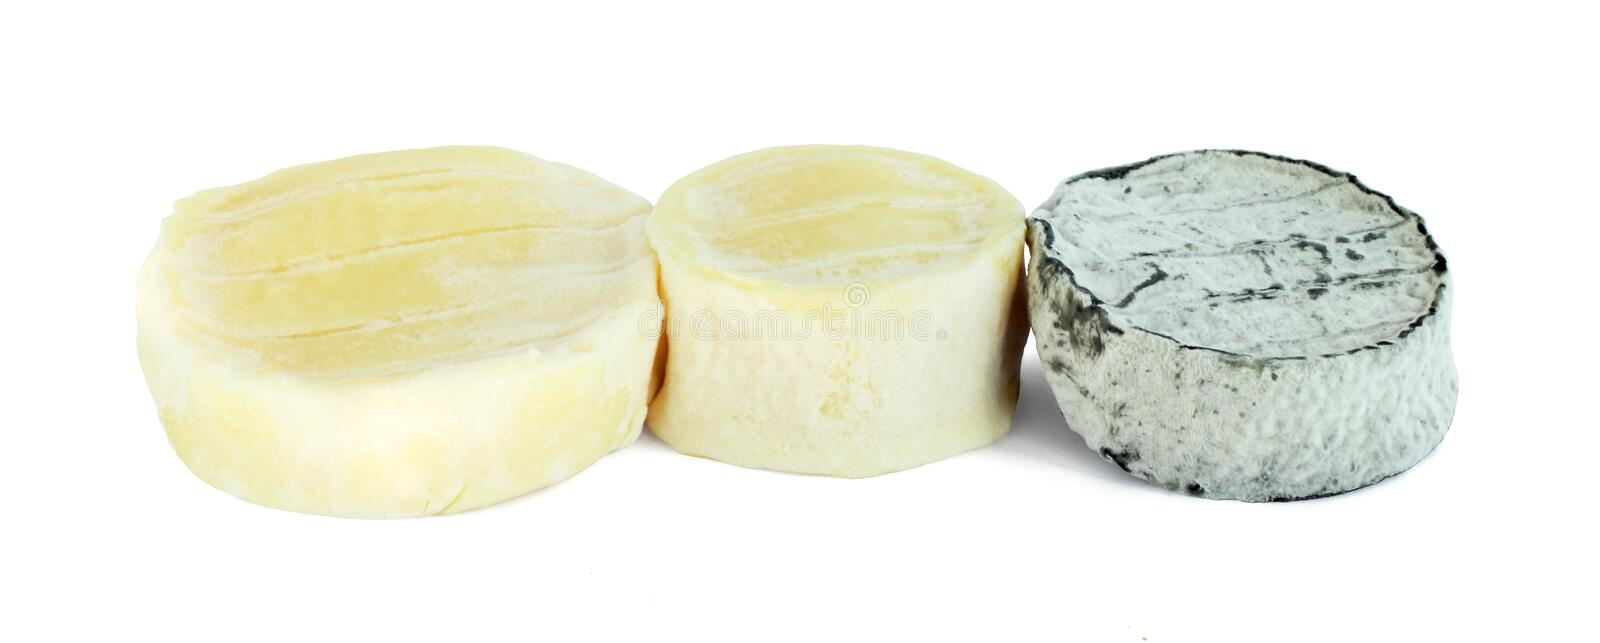 Soft goat cheese royalty free stock photos